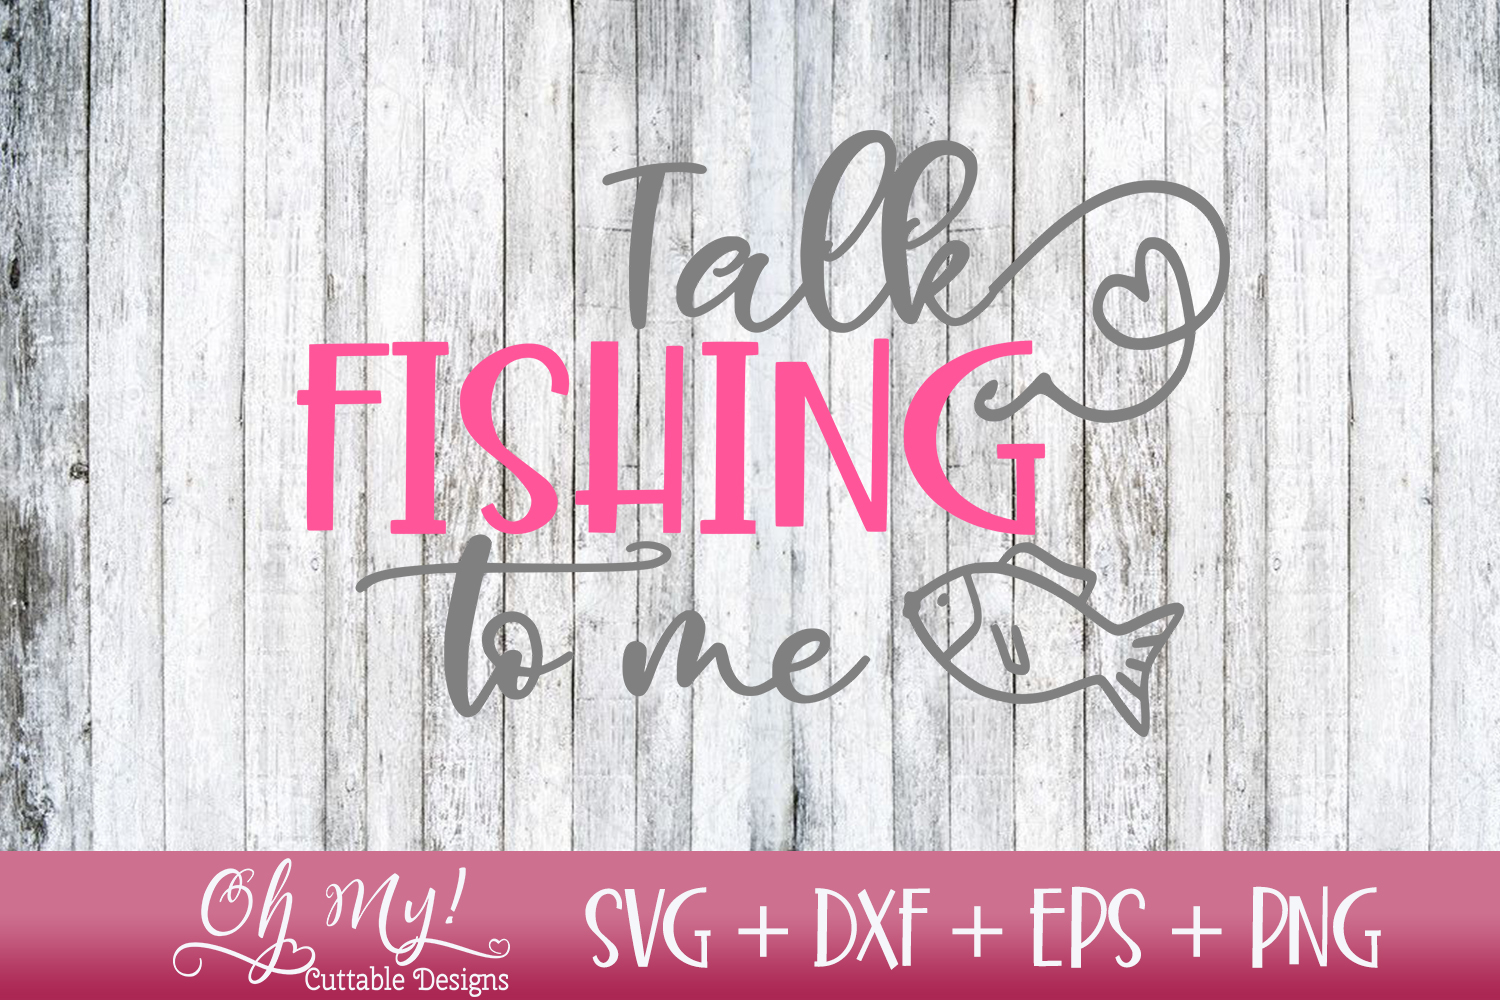 Talk Fishing To Me - SVG DXF EPS PNG Cutting example image 1